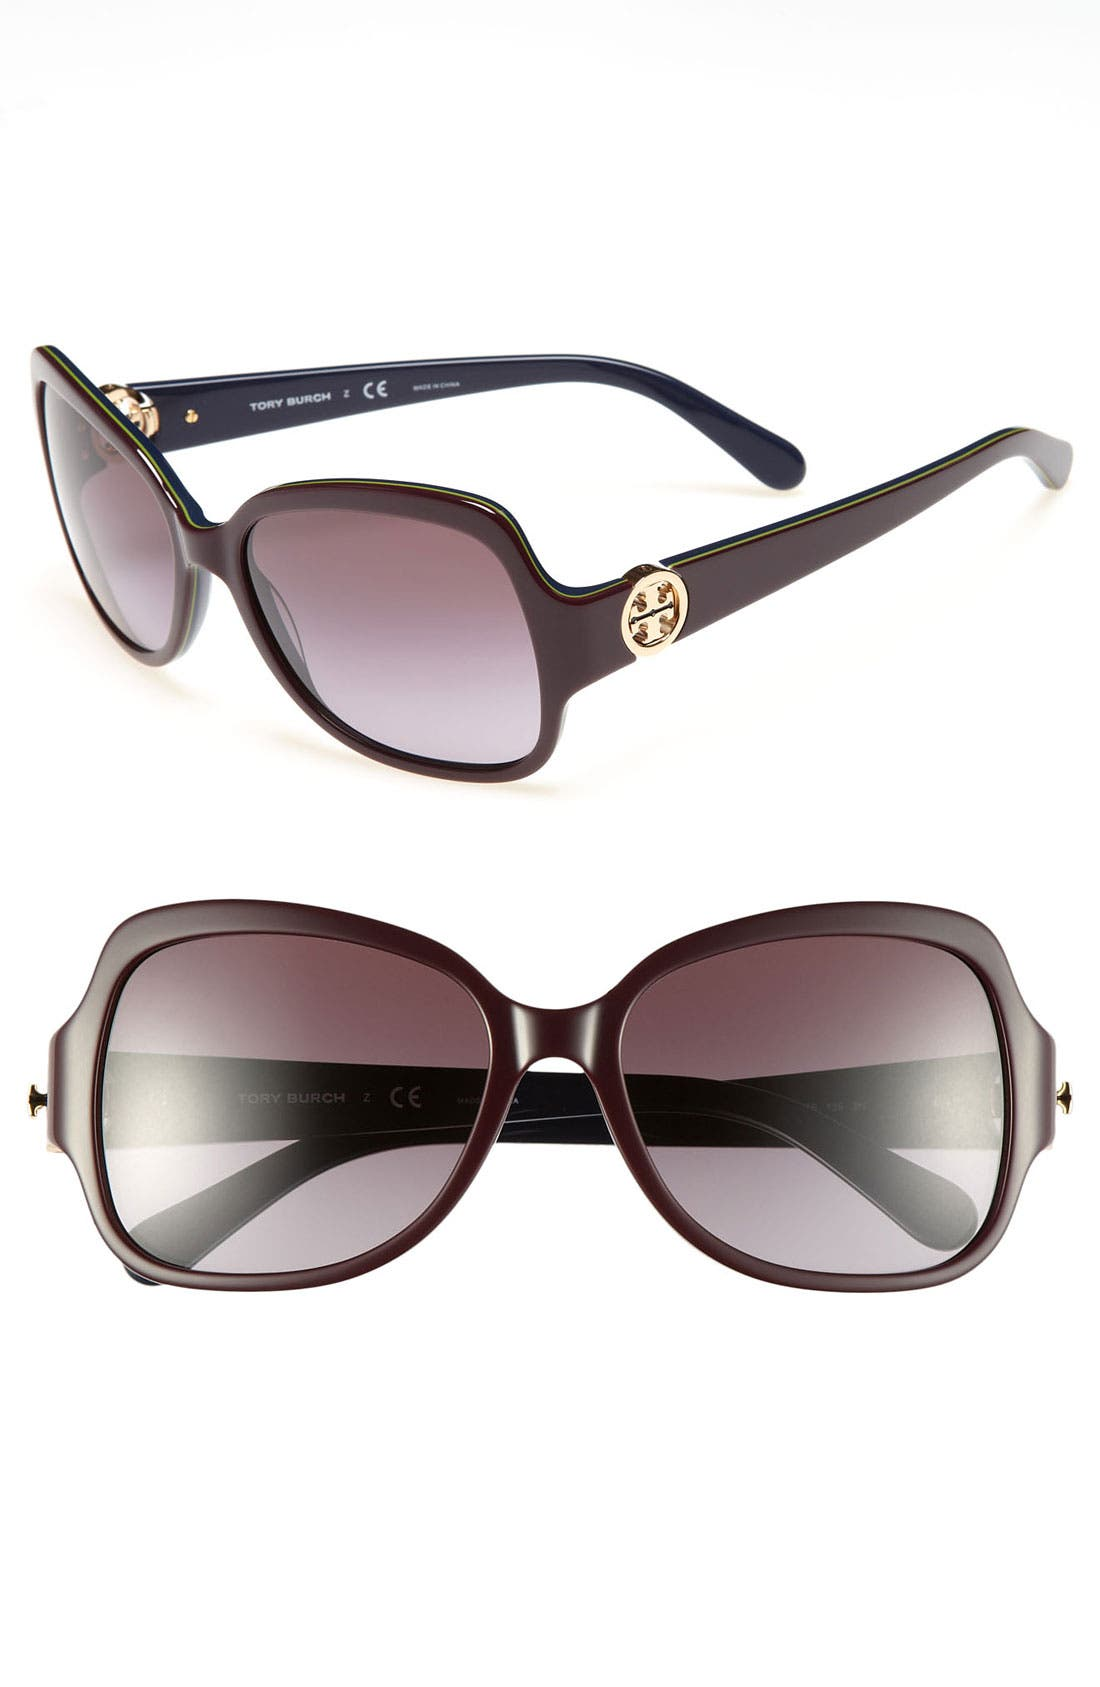 Main Image - Tory Burch 'So Glam' 57mm Sunglasses